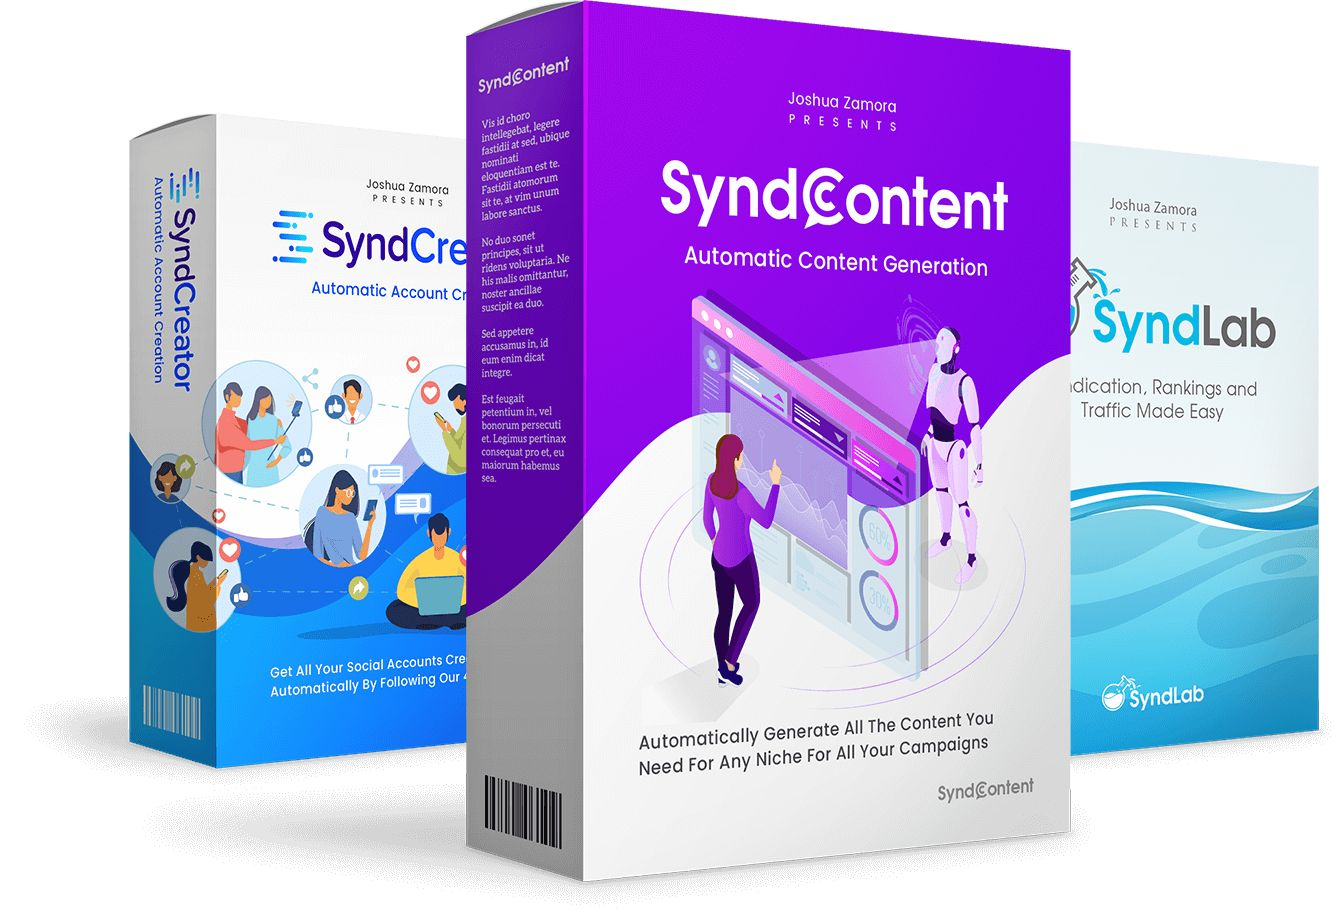 SyndTrio Review – Get Fast Page 1 Rankings Via Social Syndication In 48 Hours Or Less?